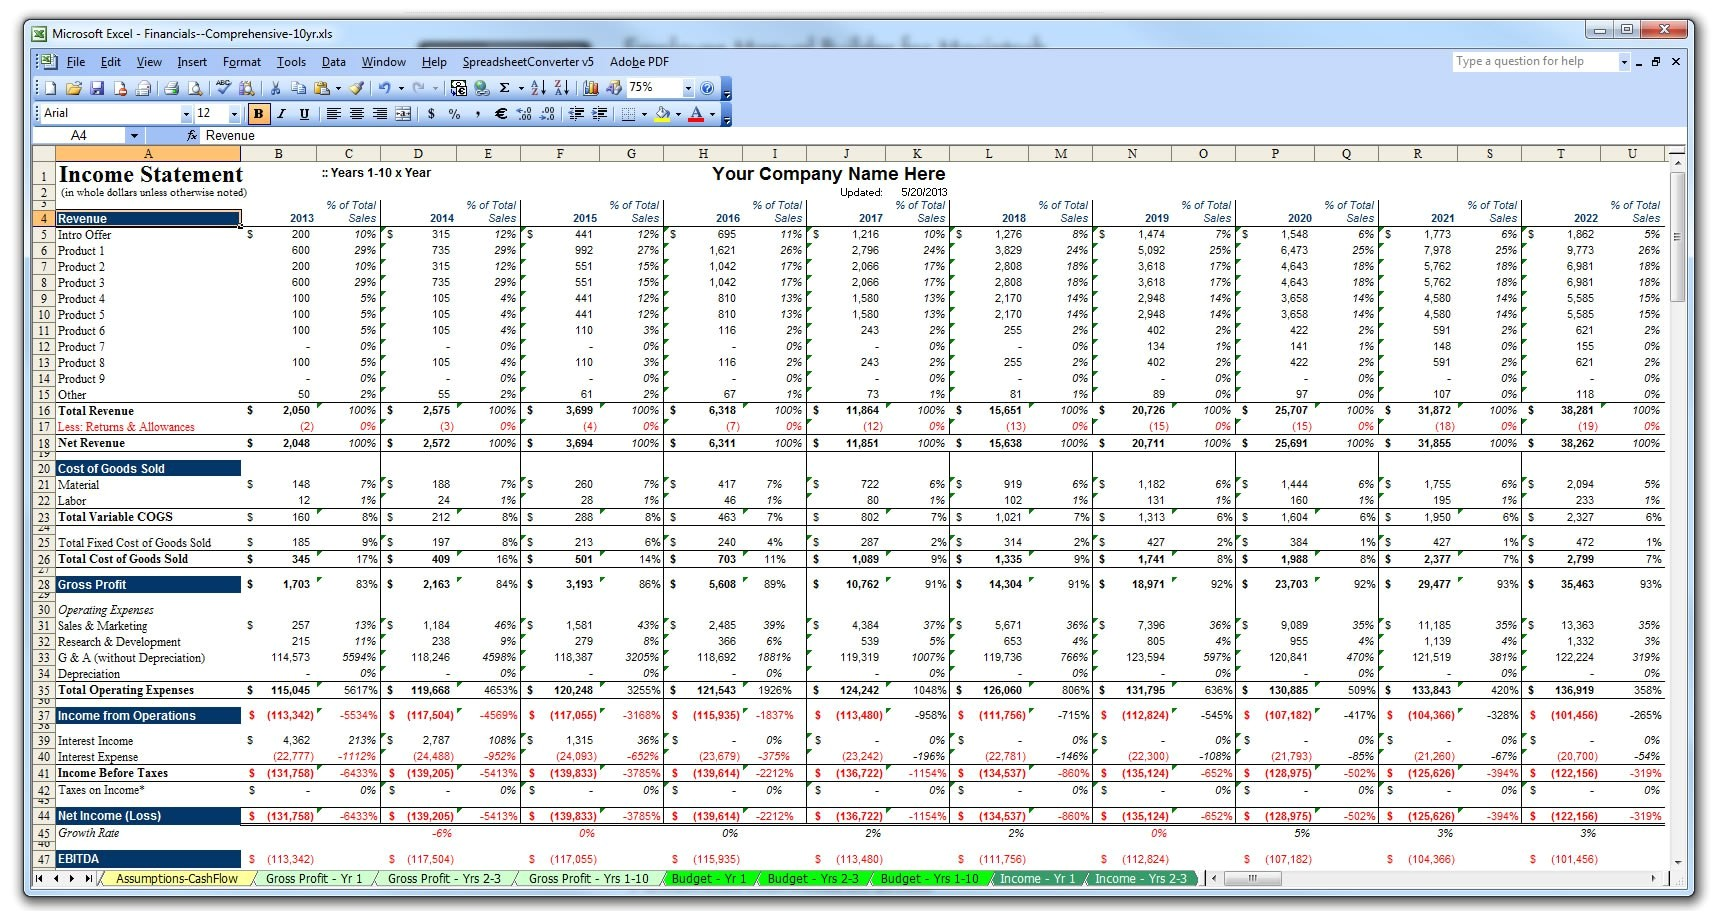 10 year business plan financial projection model